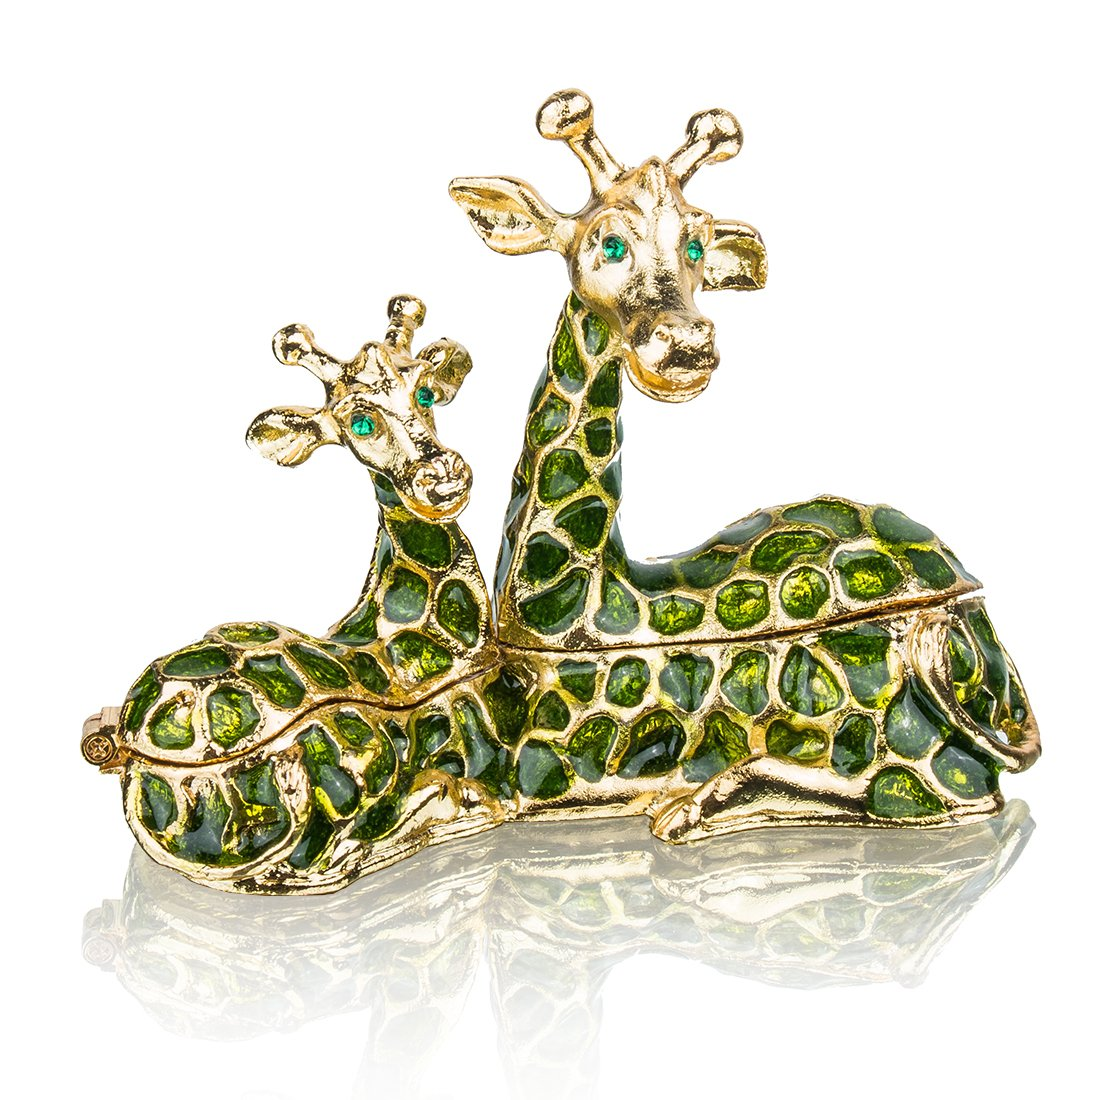 Sitting Mum and Baby Giraffe Ring Holder Hinged Trinket Boxes for Gifts, Jewelry Boxes Organizer Holder YUFENG CRAFTS MANUFACTURE CO. LTD